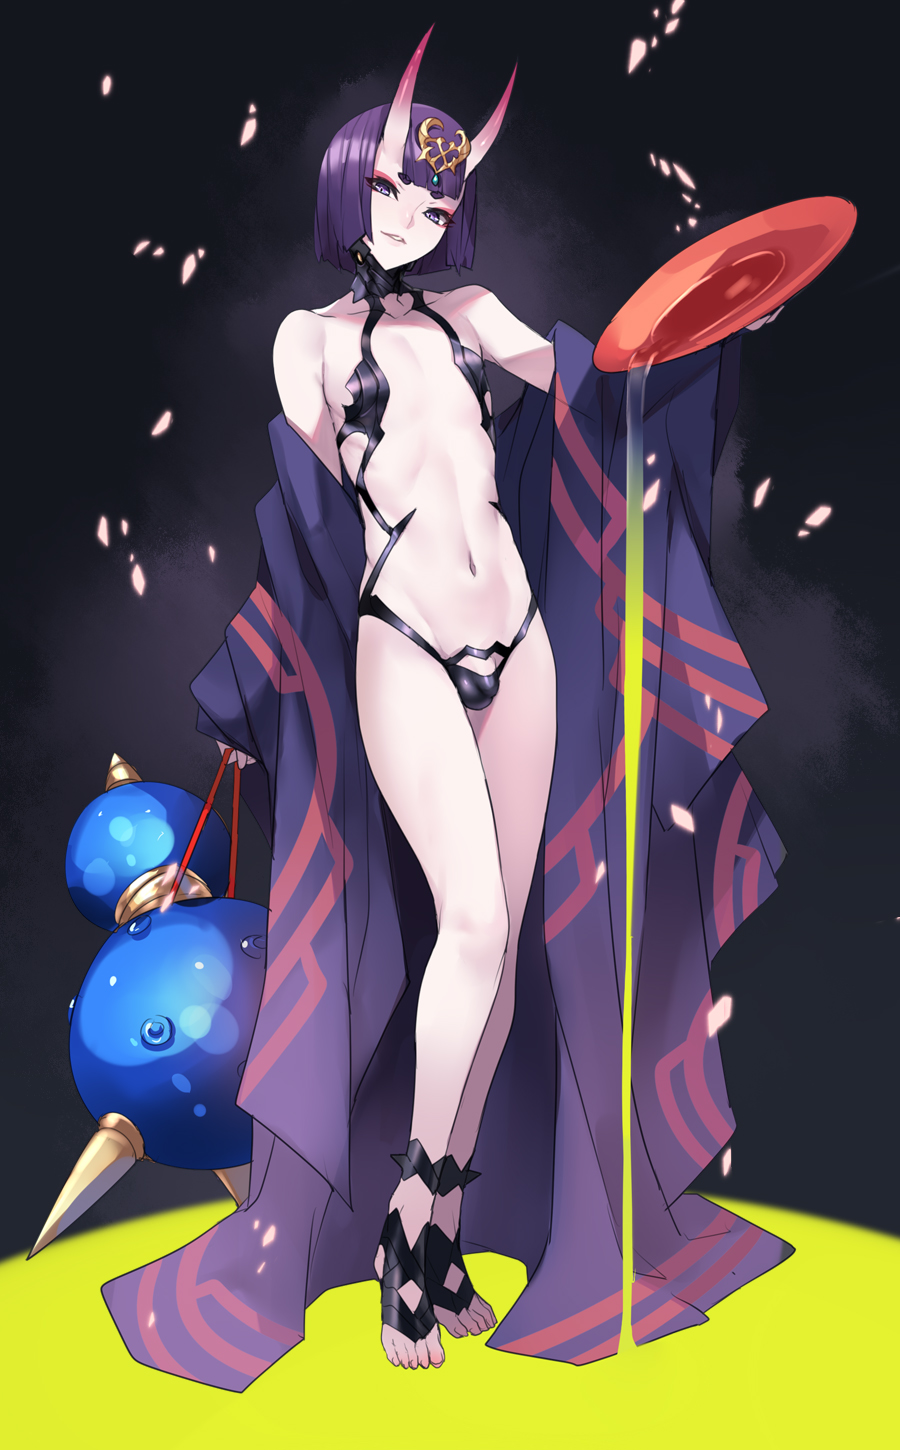 1boy ban bangs bare_shoulders barefoot barefoot_sandals bob_cut bulge collarbone cup dated eyeliner fate_(series) full_body genderswap genderswap_(ftm) headpiece highres horns japanese_clothes kimono legs long_sleeves looking_at_viewer makeup male_focus off_shoulder oni oni_horns open_clothes open_kimono otoko_no_ko parted_lips pouring purple_hair purple_kimono revealing_clothes sakazuki short_eyebrows short_hair shuten_douji_(fate/grand_order) skin-covered_horns smile solo toes violet_eyes wide_sleeves